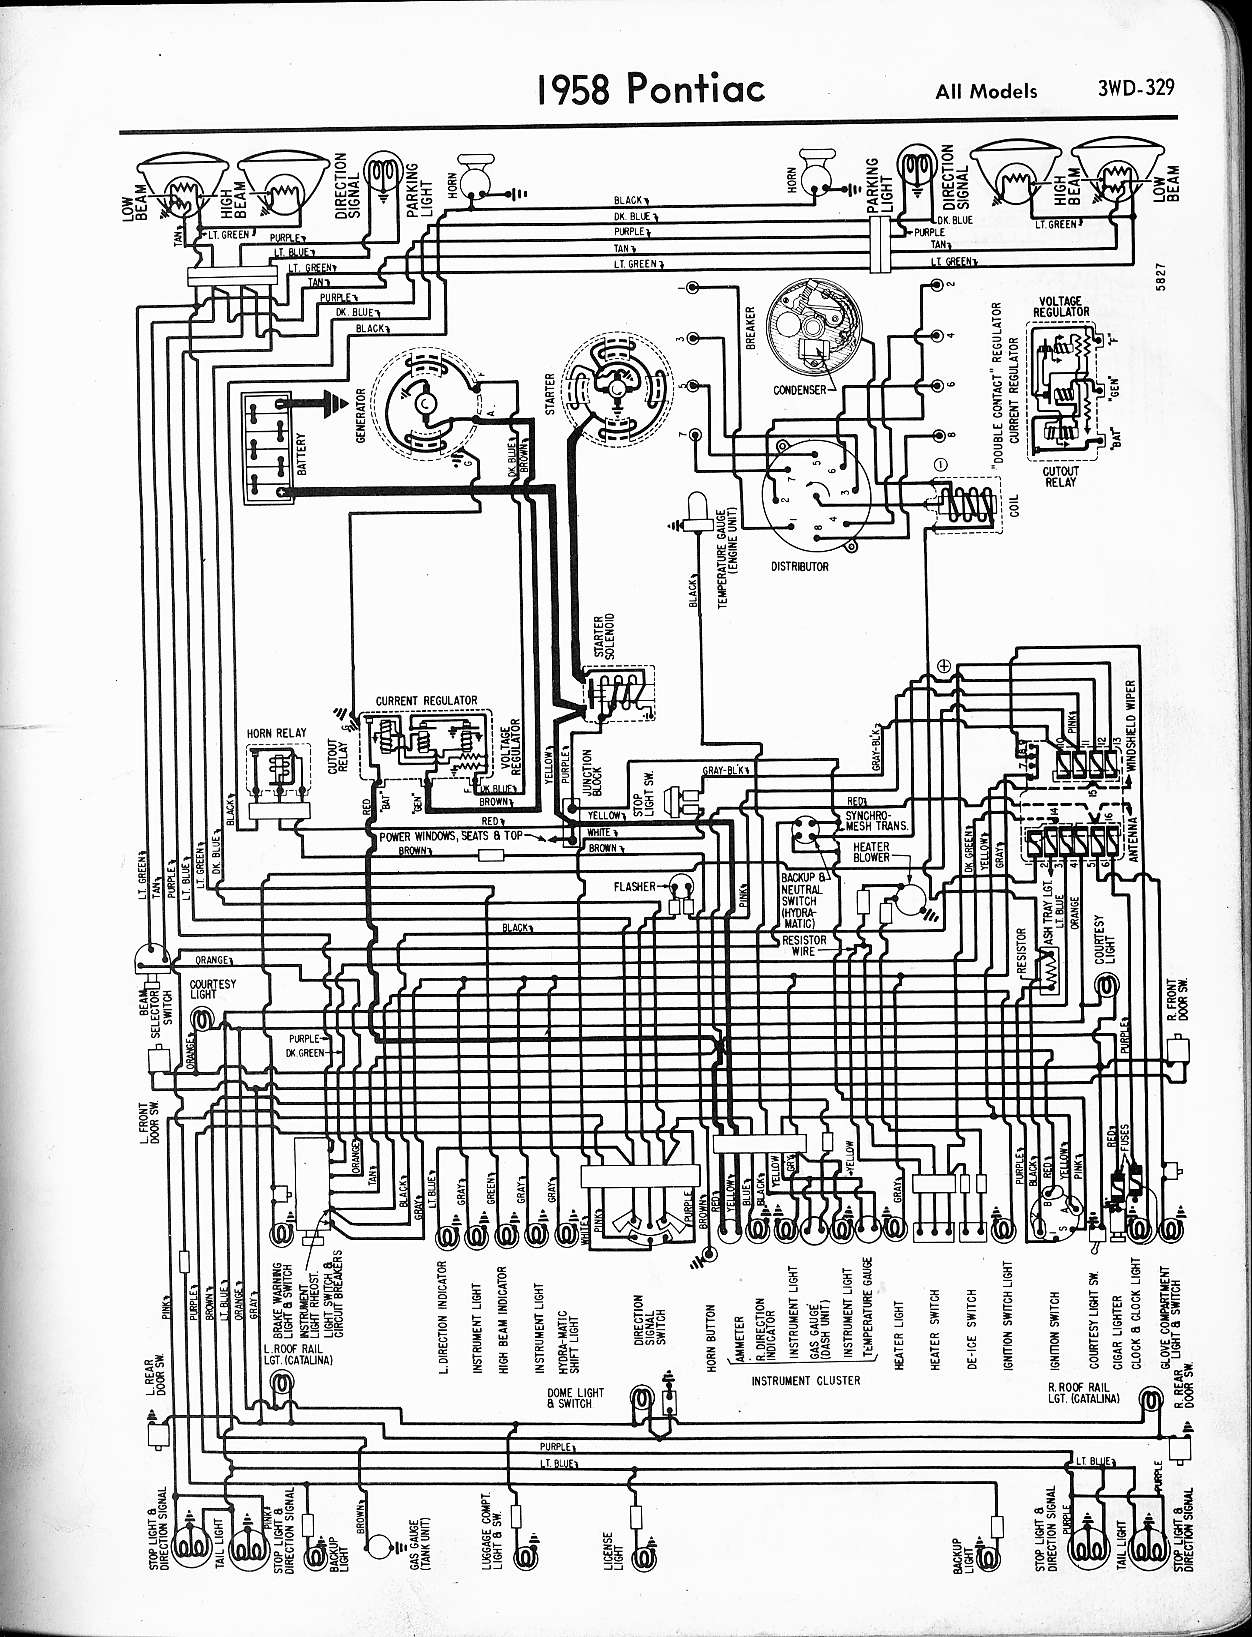 2001 pontiac sunfire power window wiring diagram images gallery